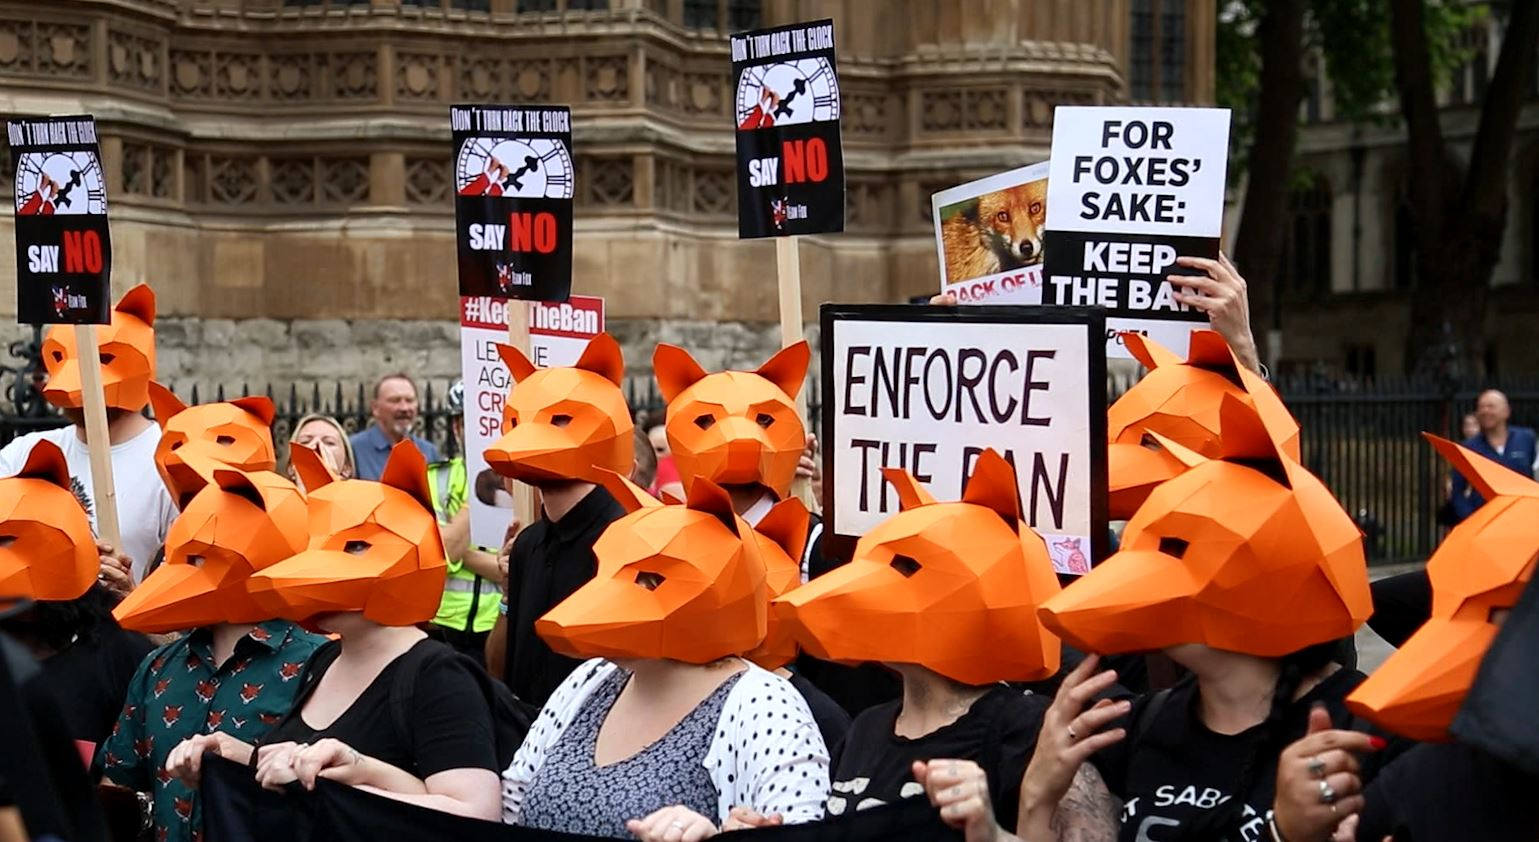 Fox Hunting Ban Vote Protest